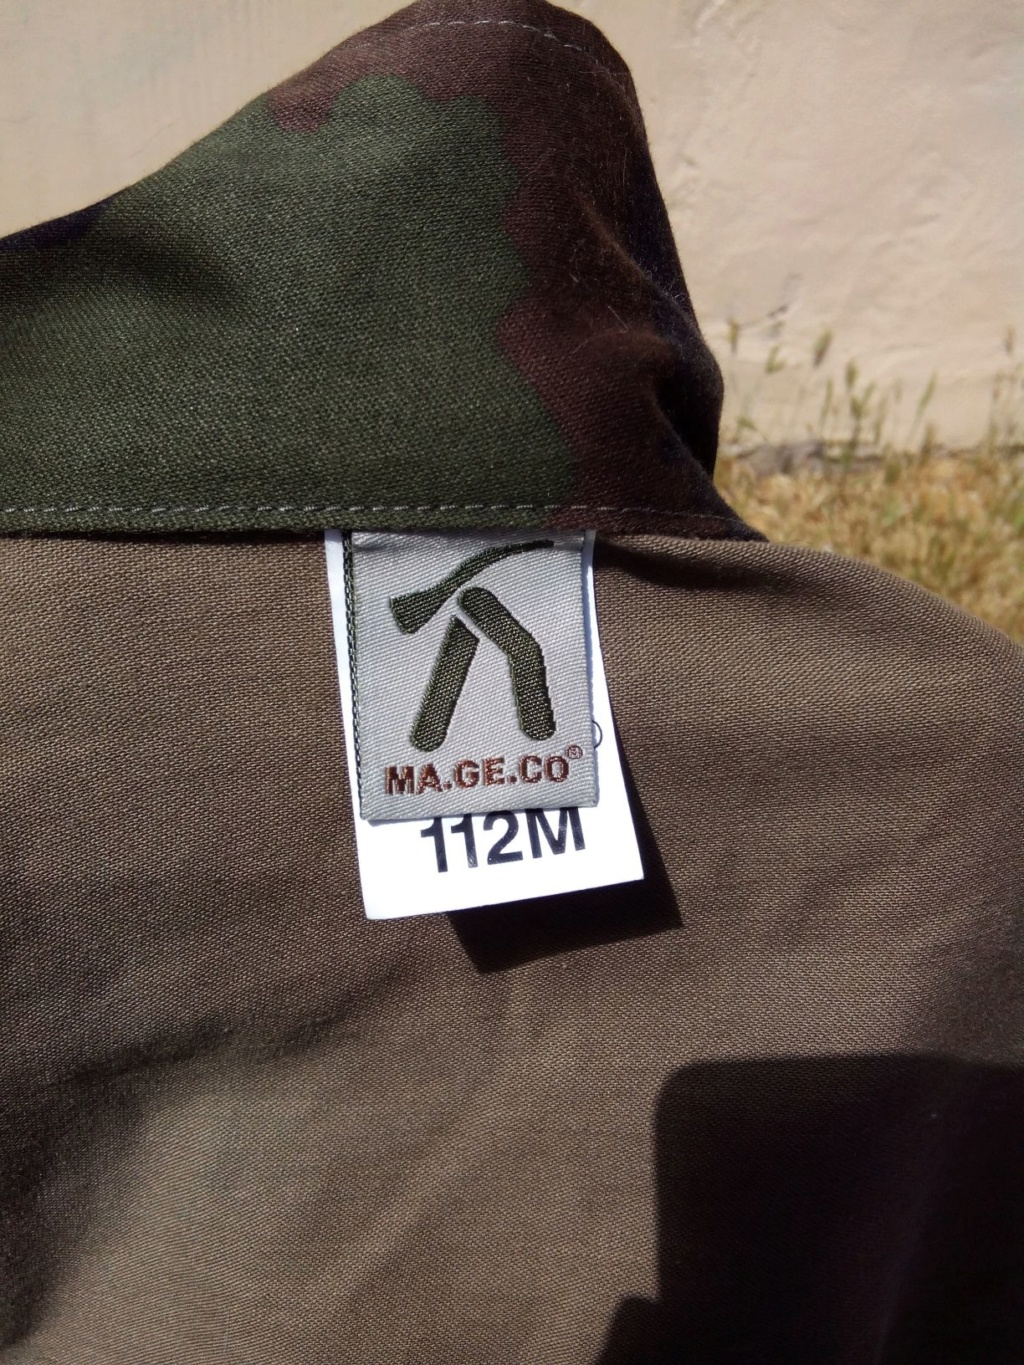 French air force labels France22